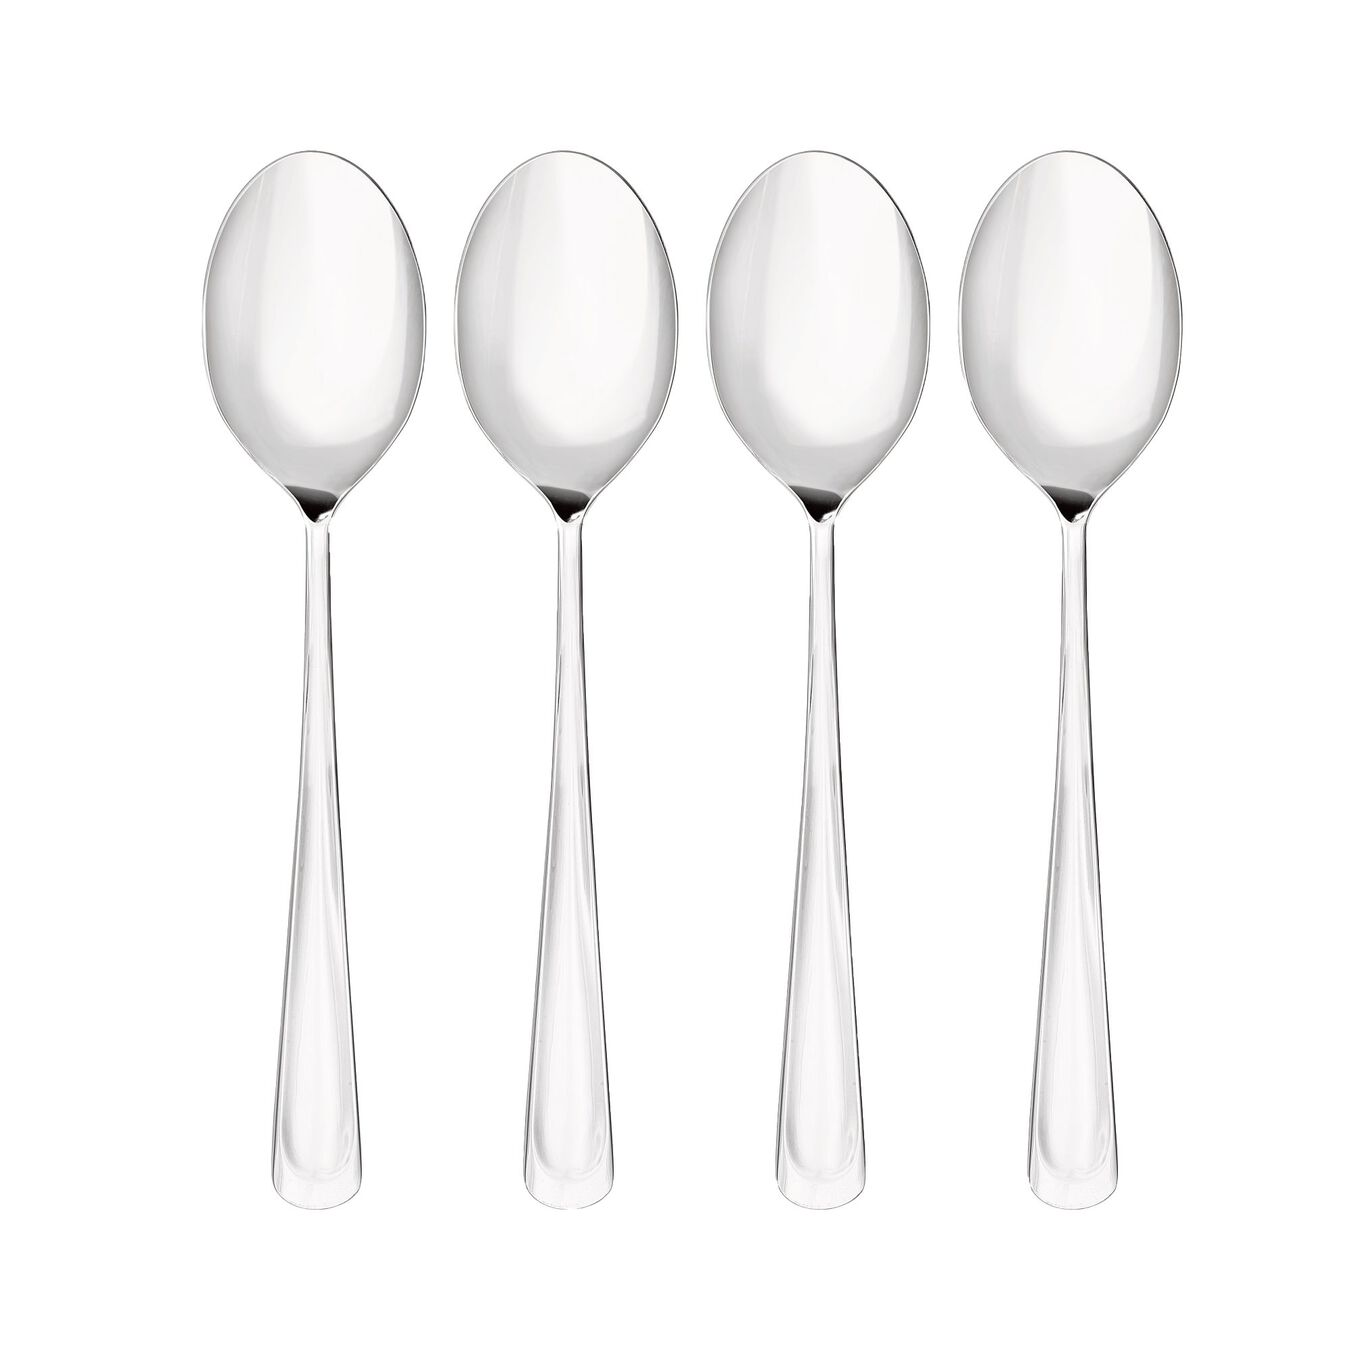 Dinner spoon set, 4 Piece,,large 1